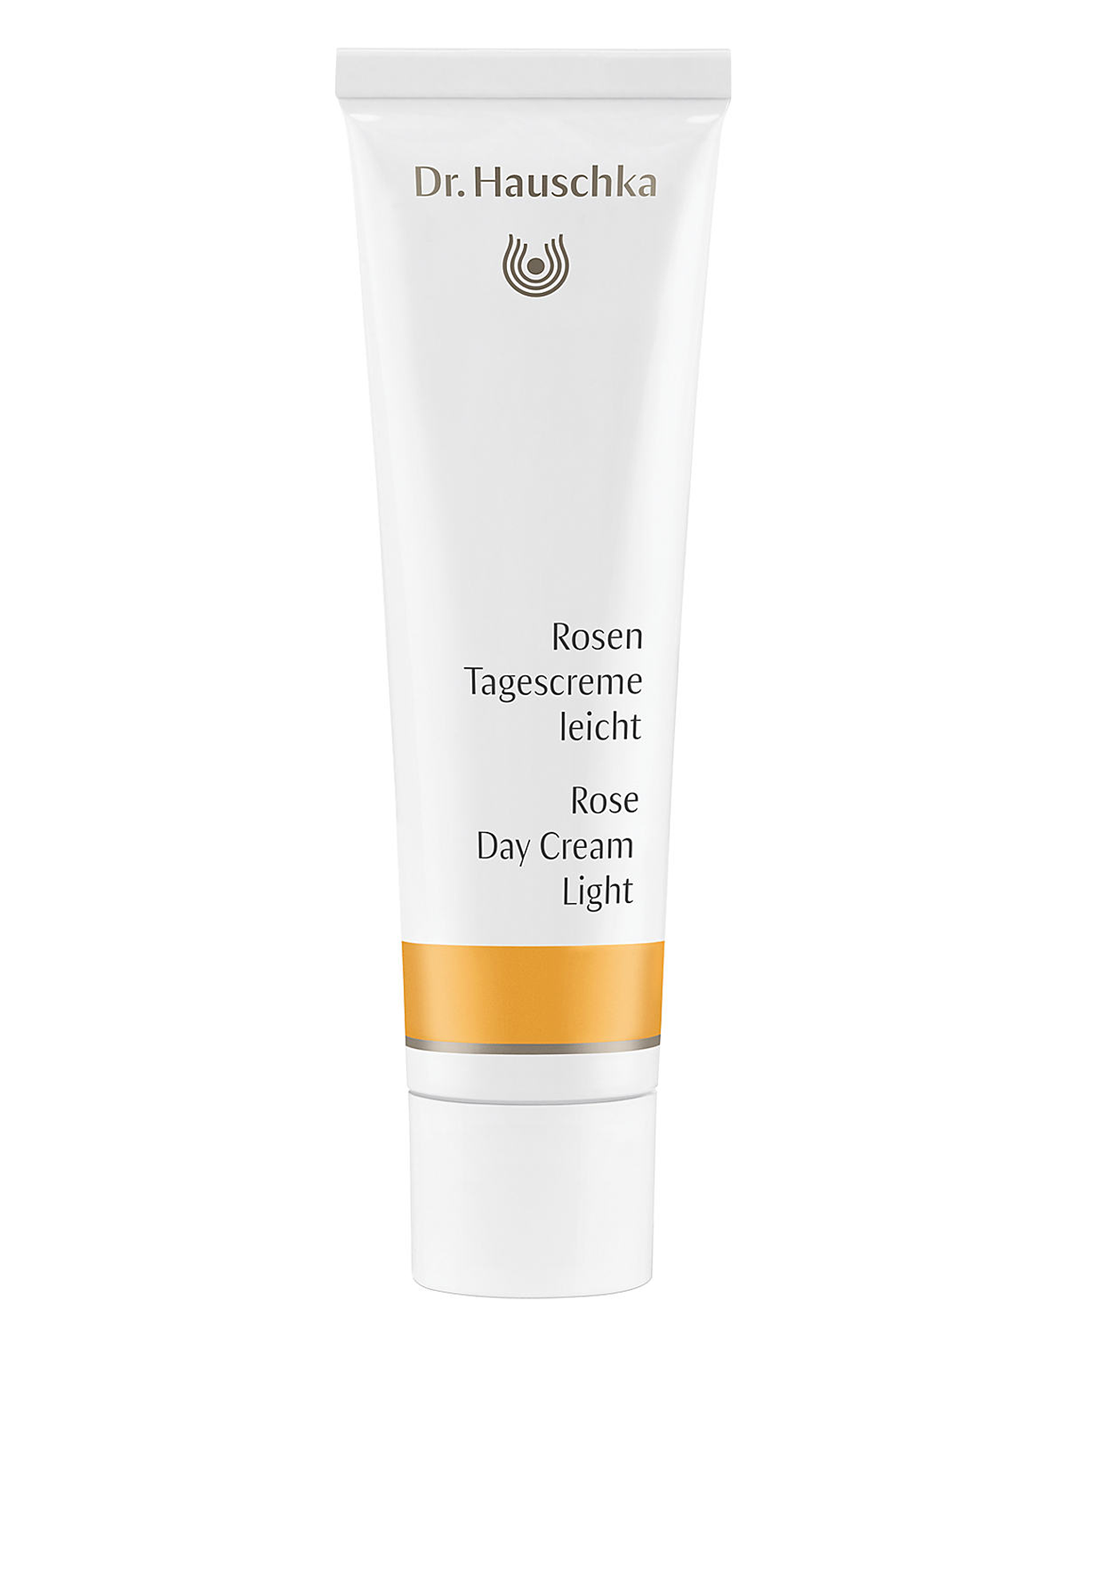 Dr. Hauschka Rose Day Cream Light, 30ml